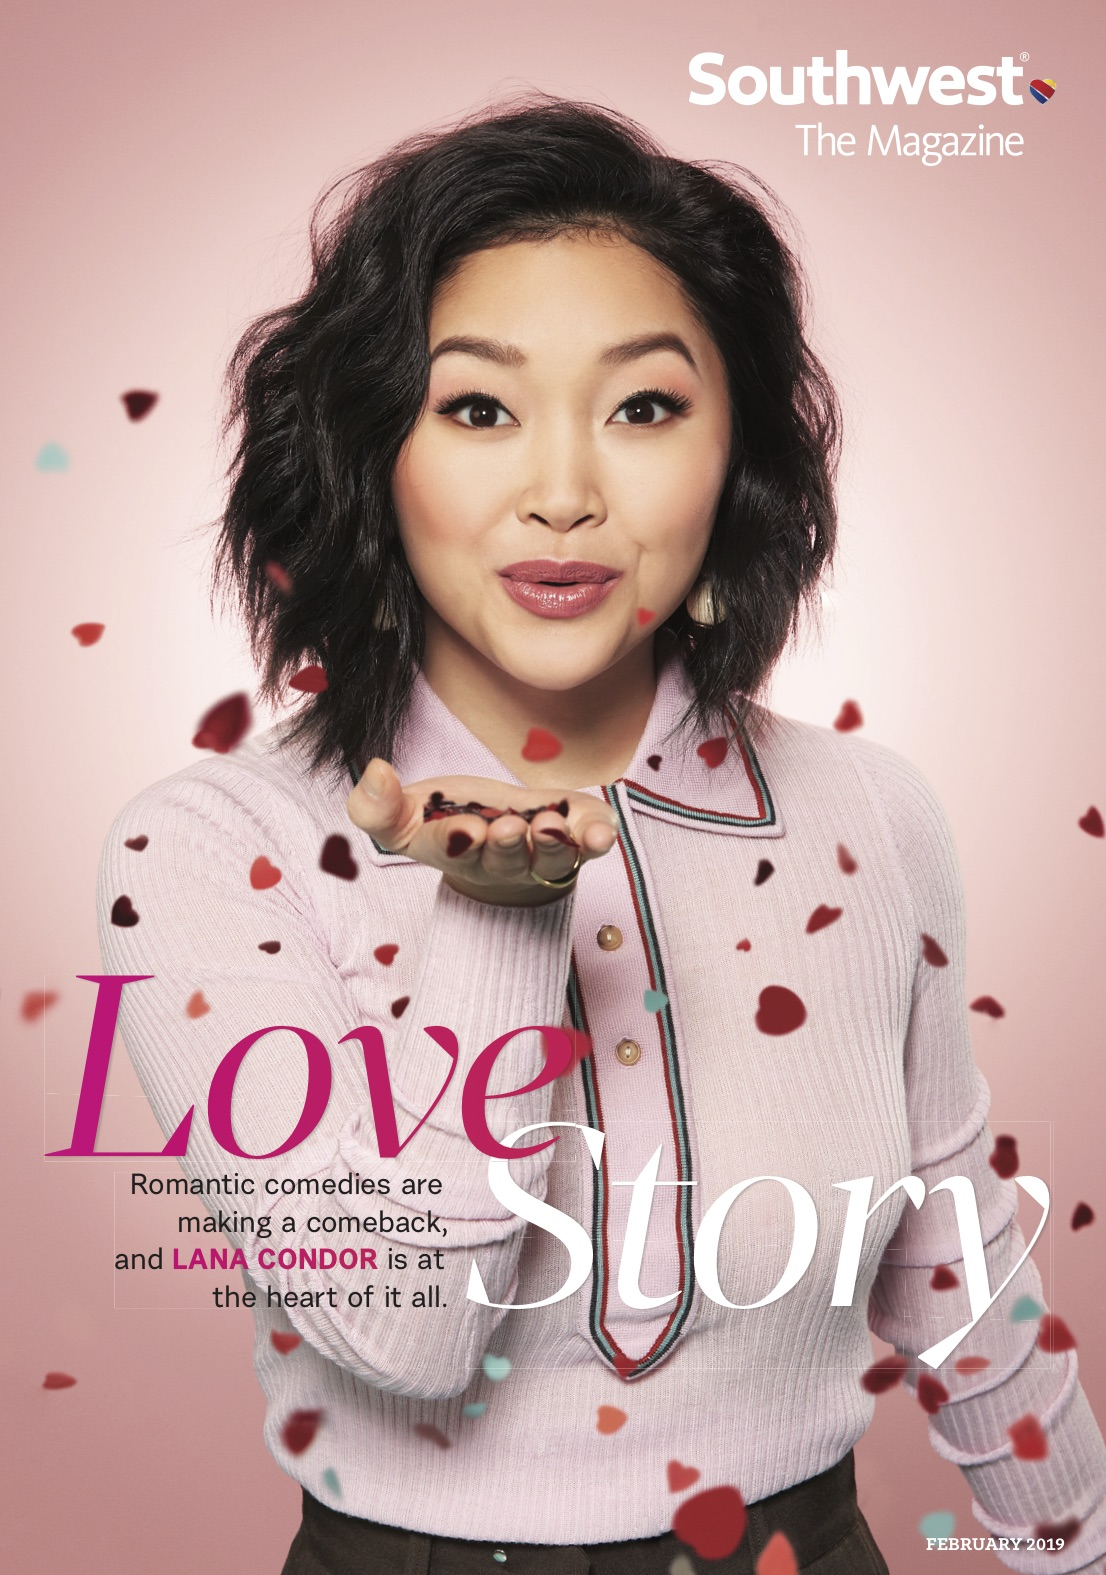 Lana Condor featured on the cover of Southwest Magazine February 2019